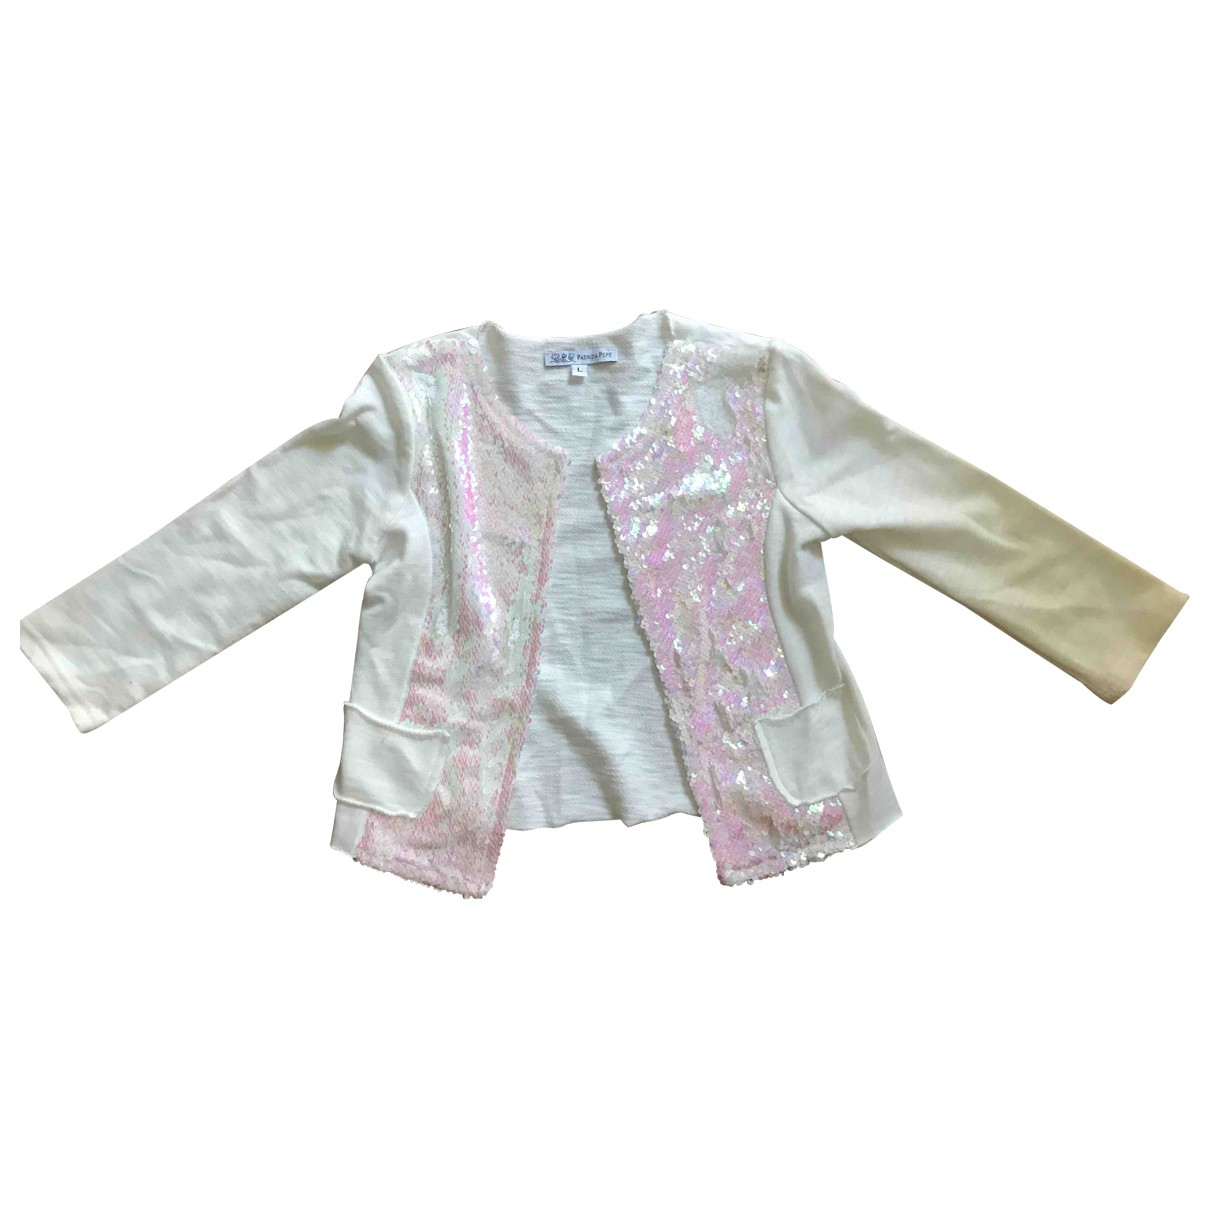 Patrizia Pepe \N White Glitter  top for Kids 5 years - up to 108cm FR